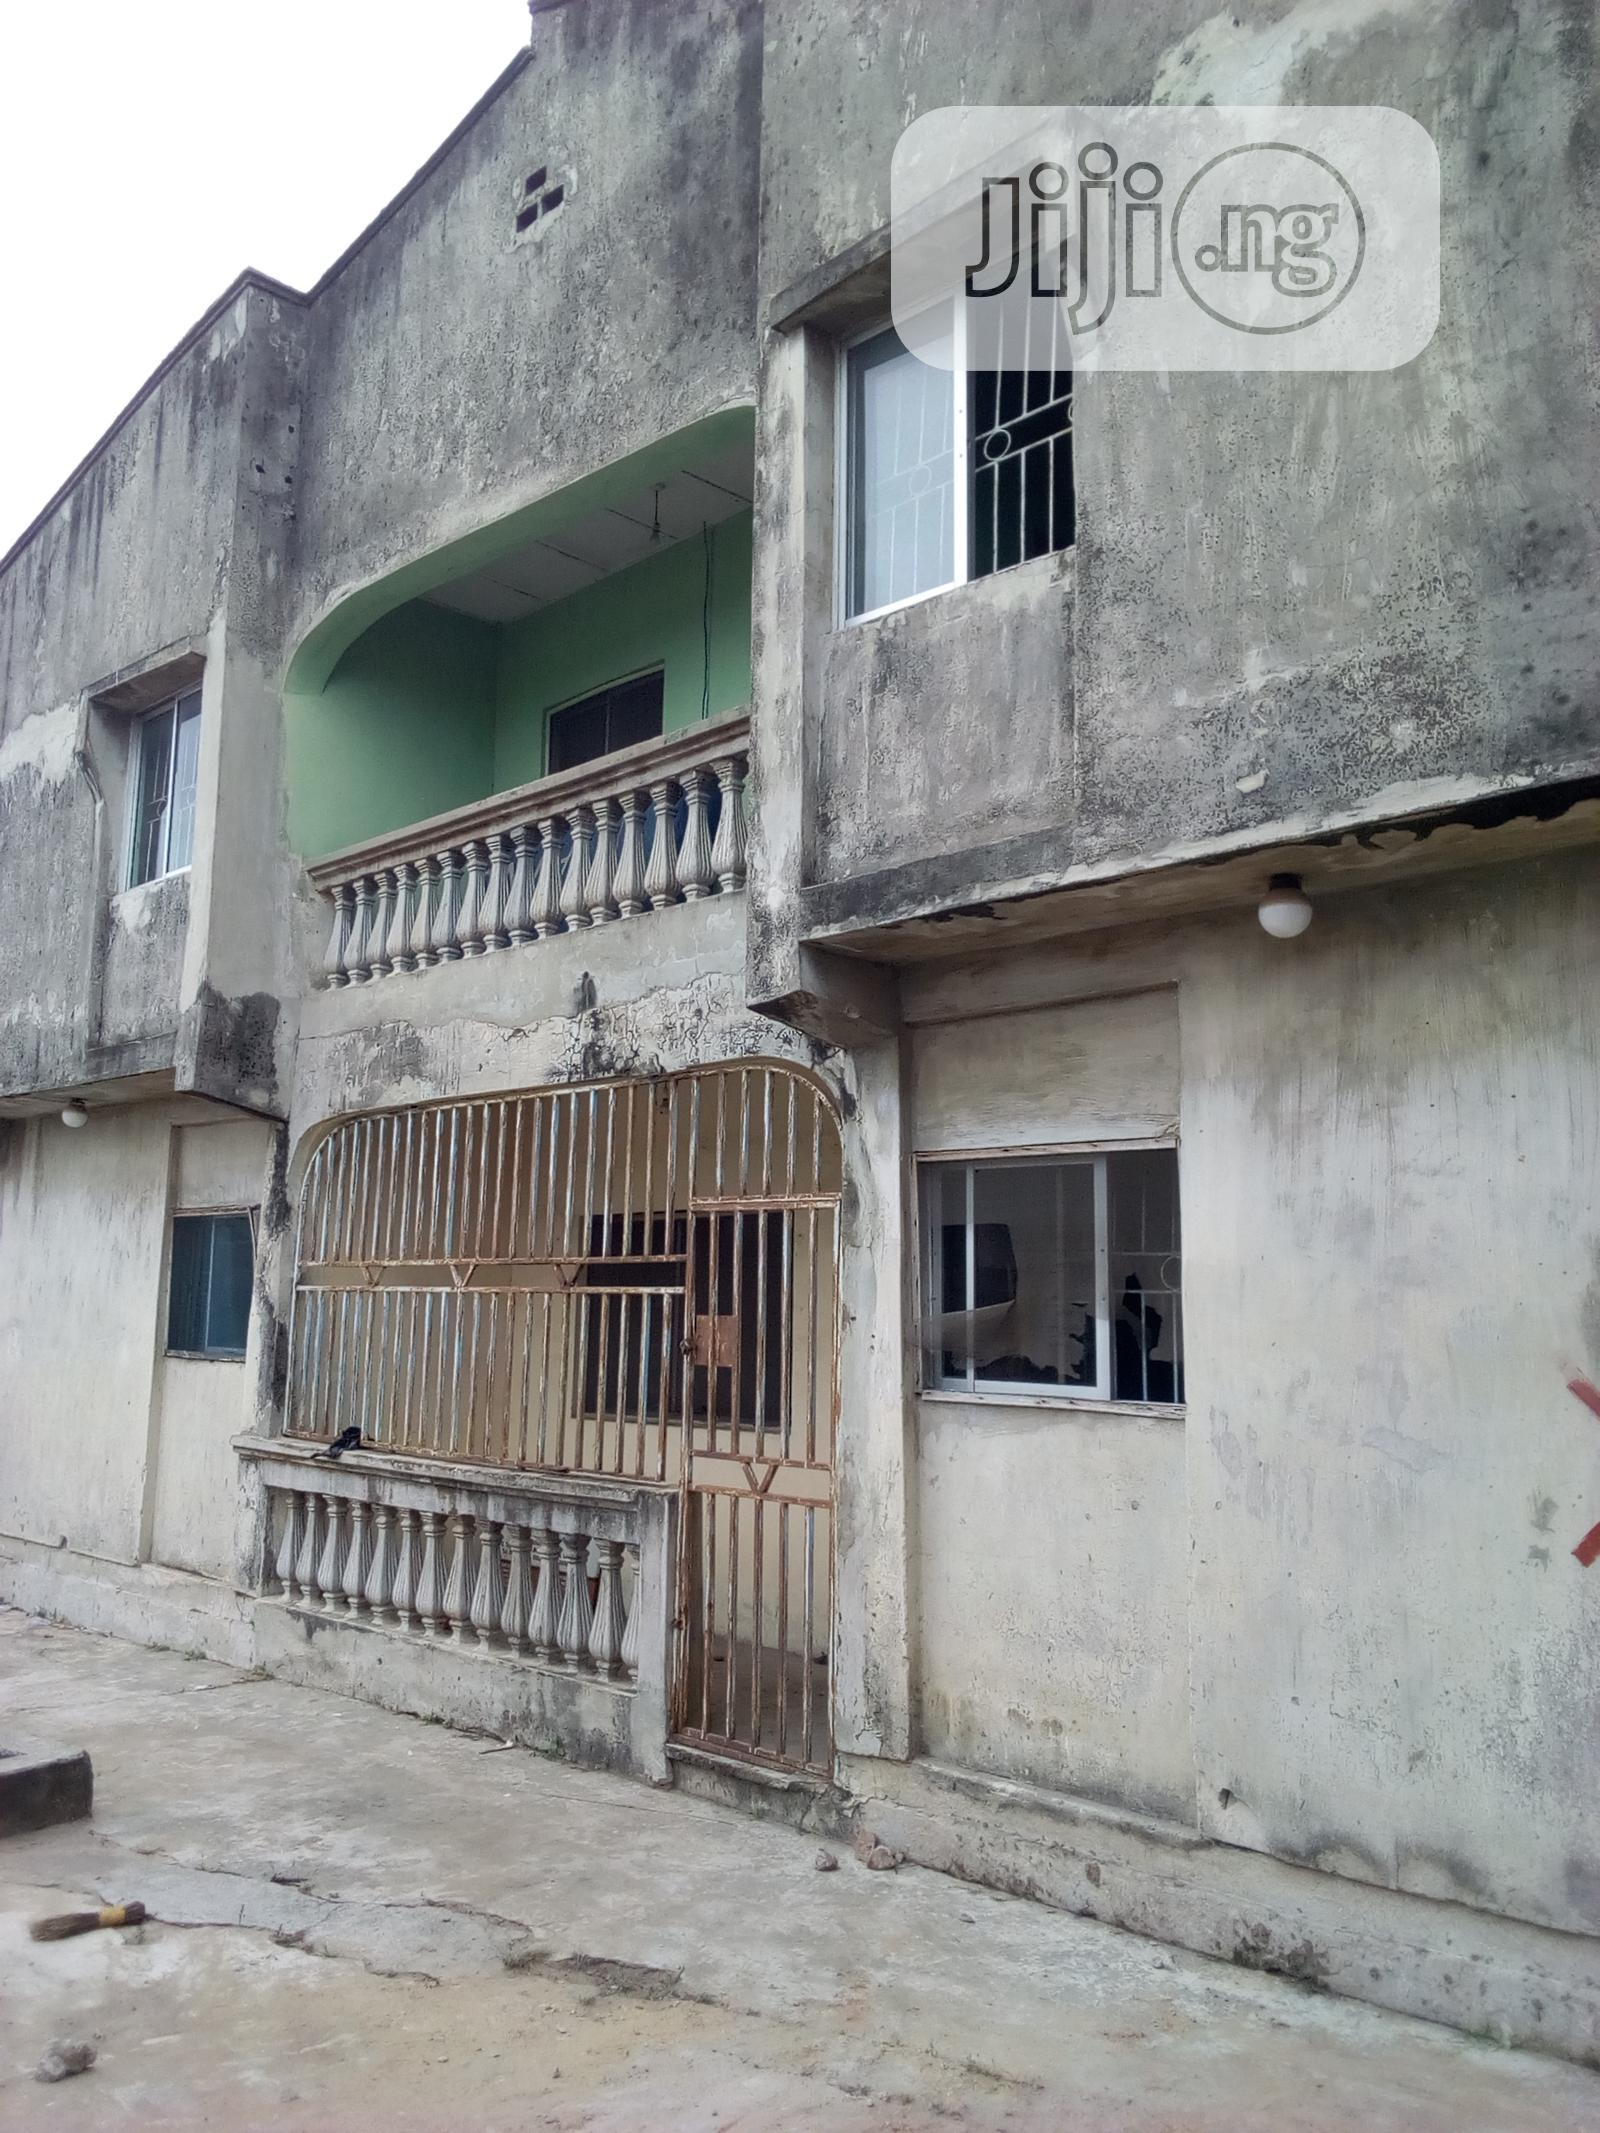 4 Flat For Sale, 3 Bed Room Flat Into 4units For Sale.